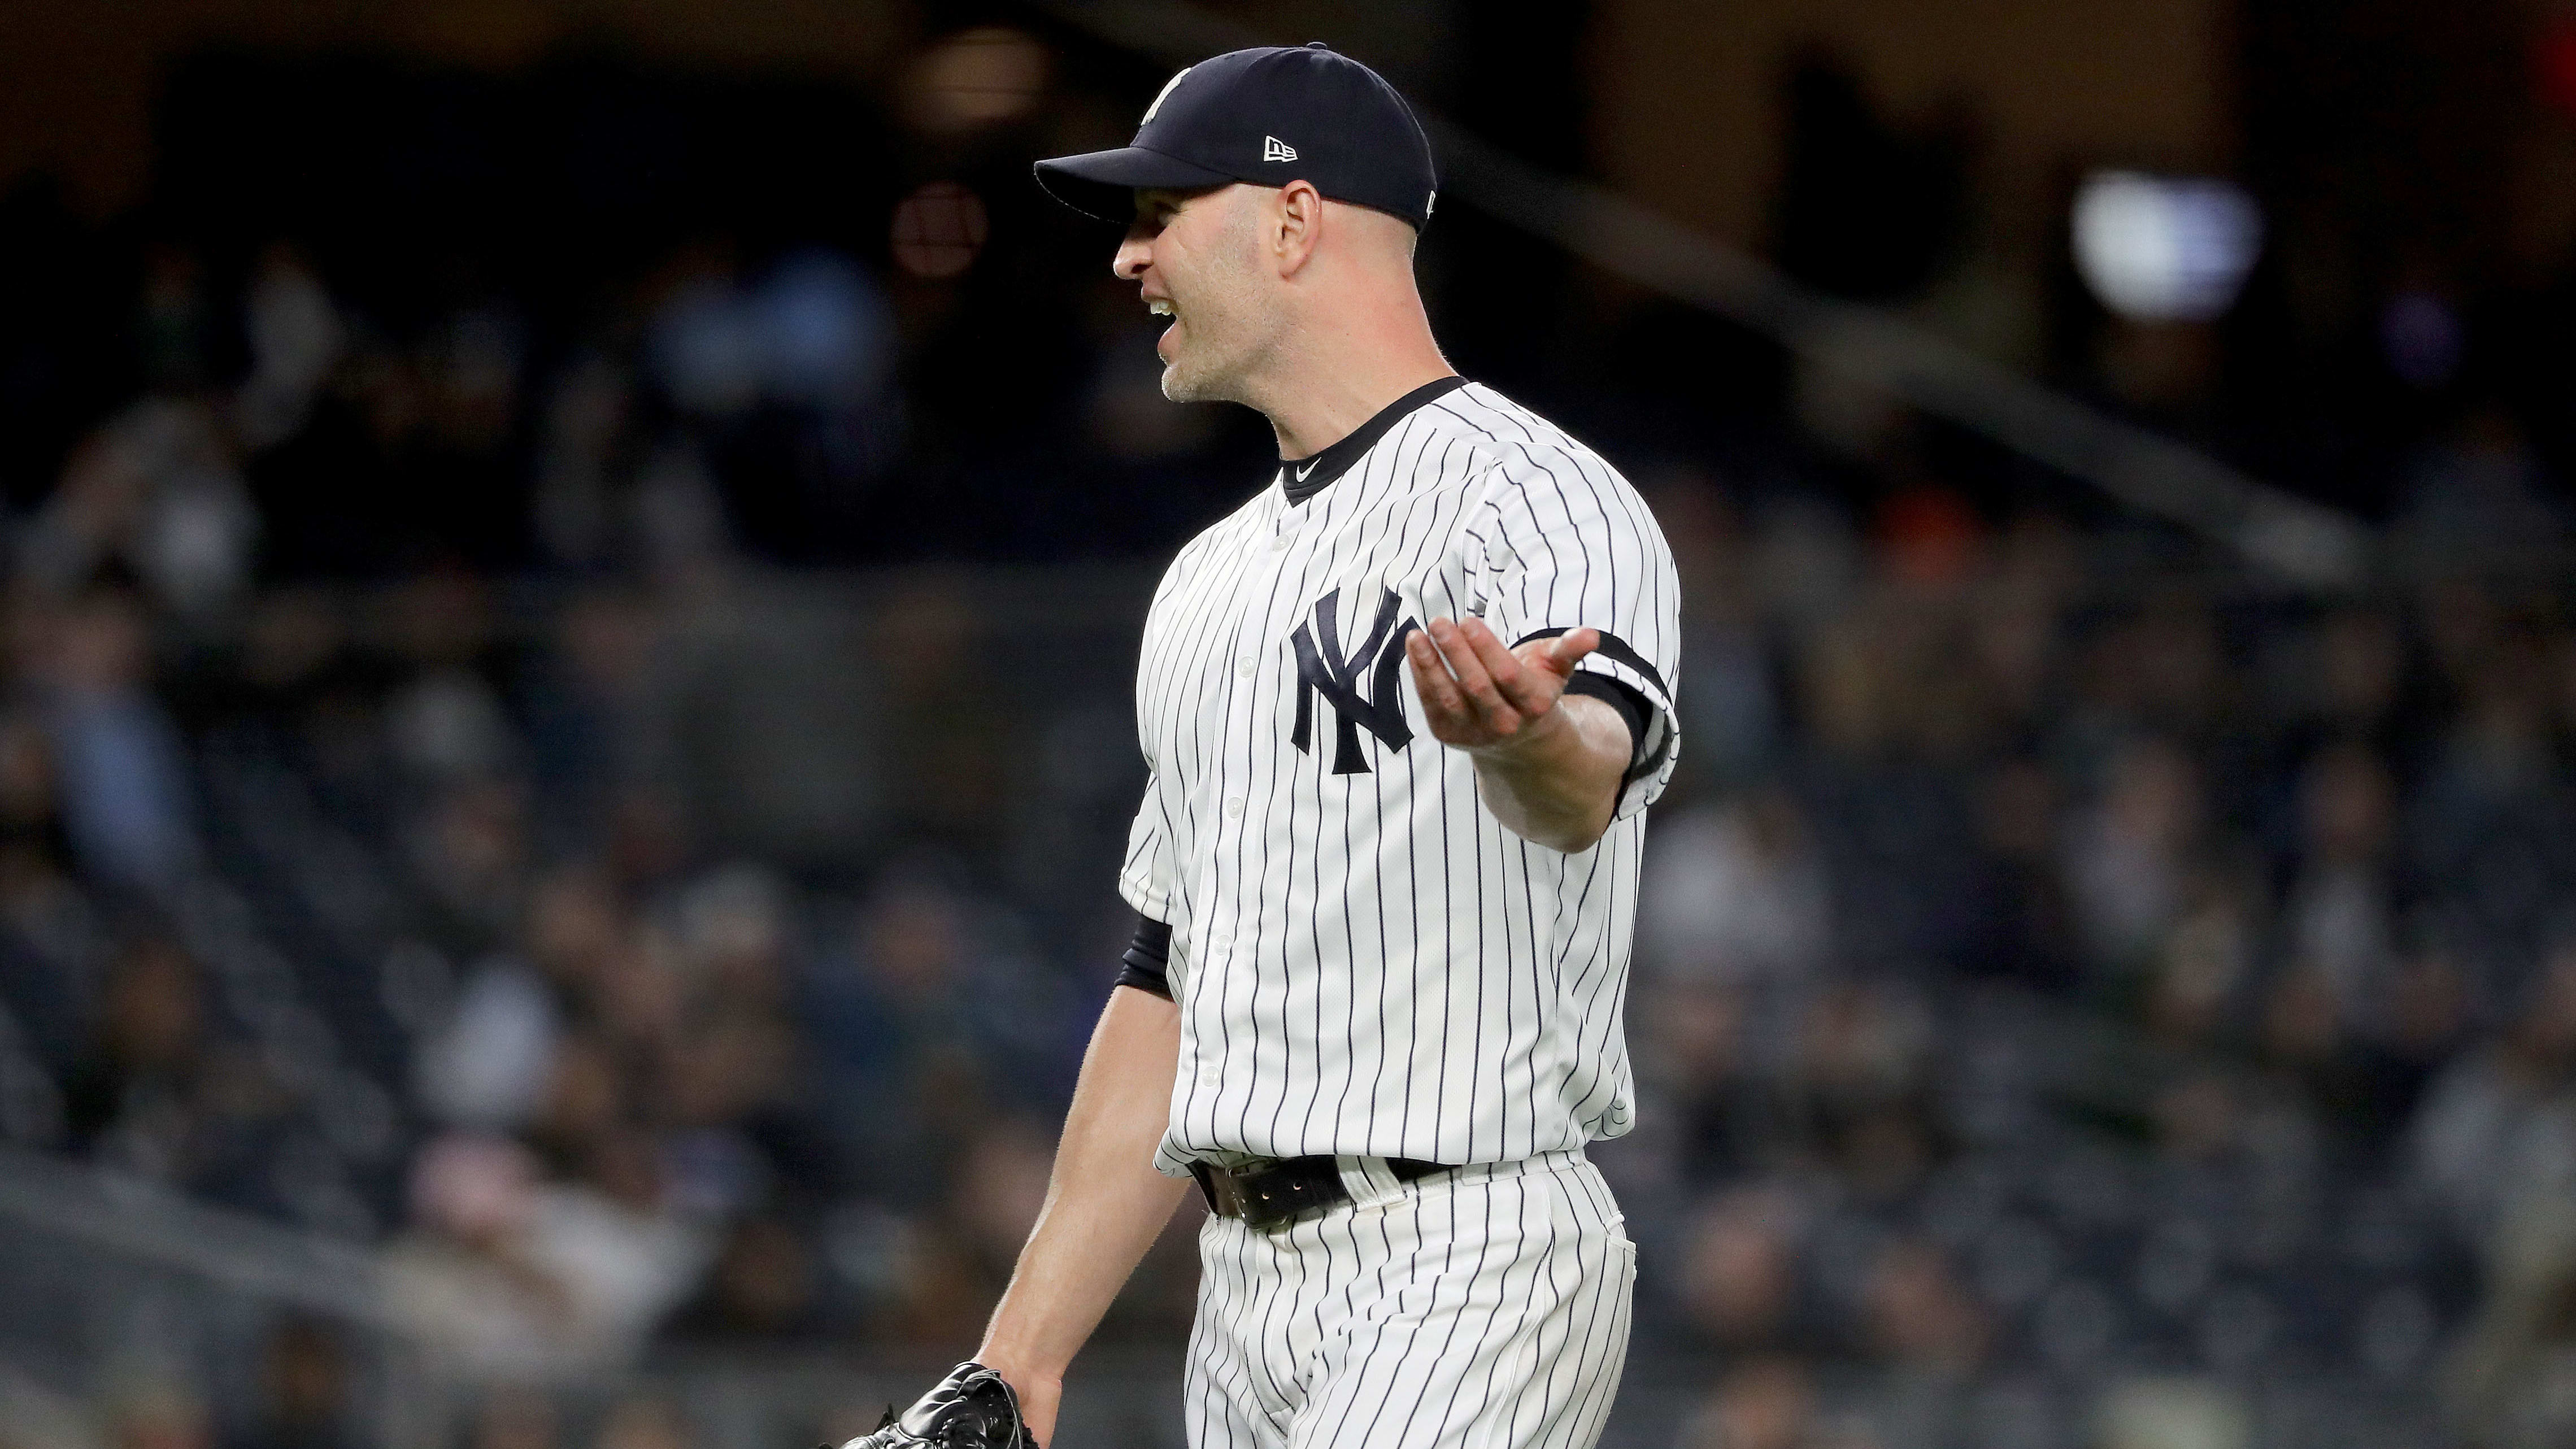 NEW YORK, NEW YORK - MAY 09:  J.A. Happ #34 of the New York Yankees reacts as he is pulled from the game in the sixth inning against the Seattle Mariners at Yankee Stadium on May 09, 2019 in the Bronx borough of New York City. (Photo by Elsa/Getty Images)